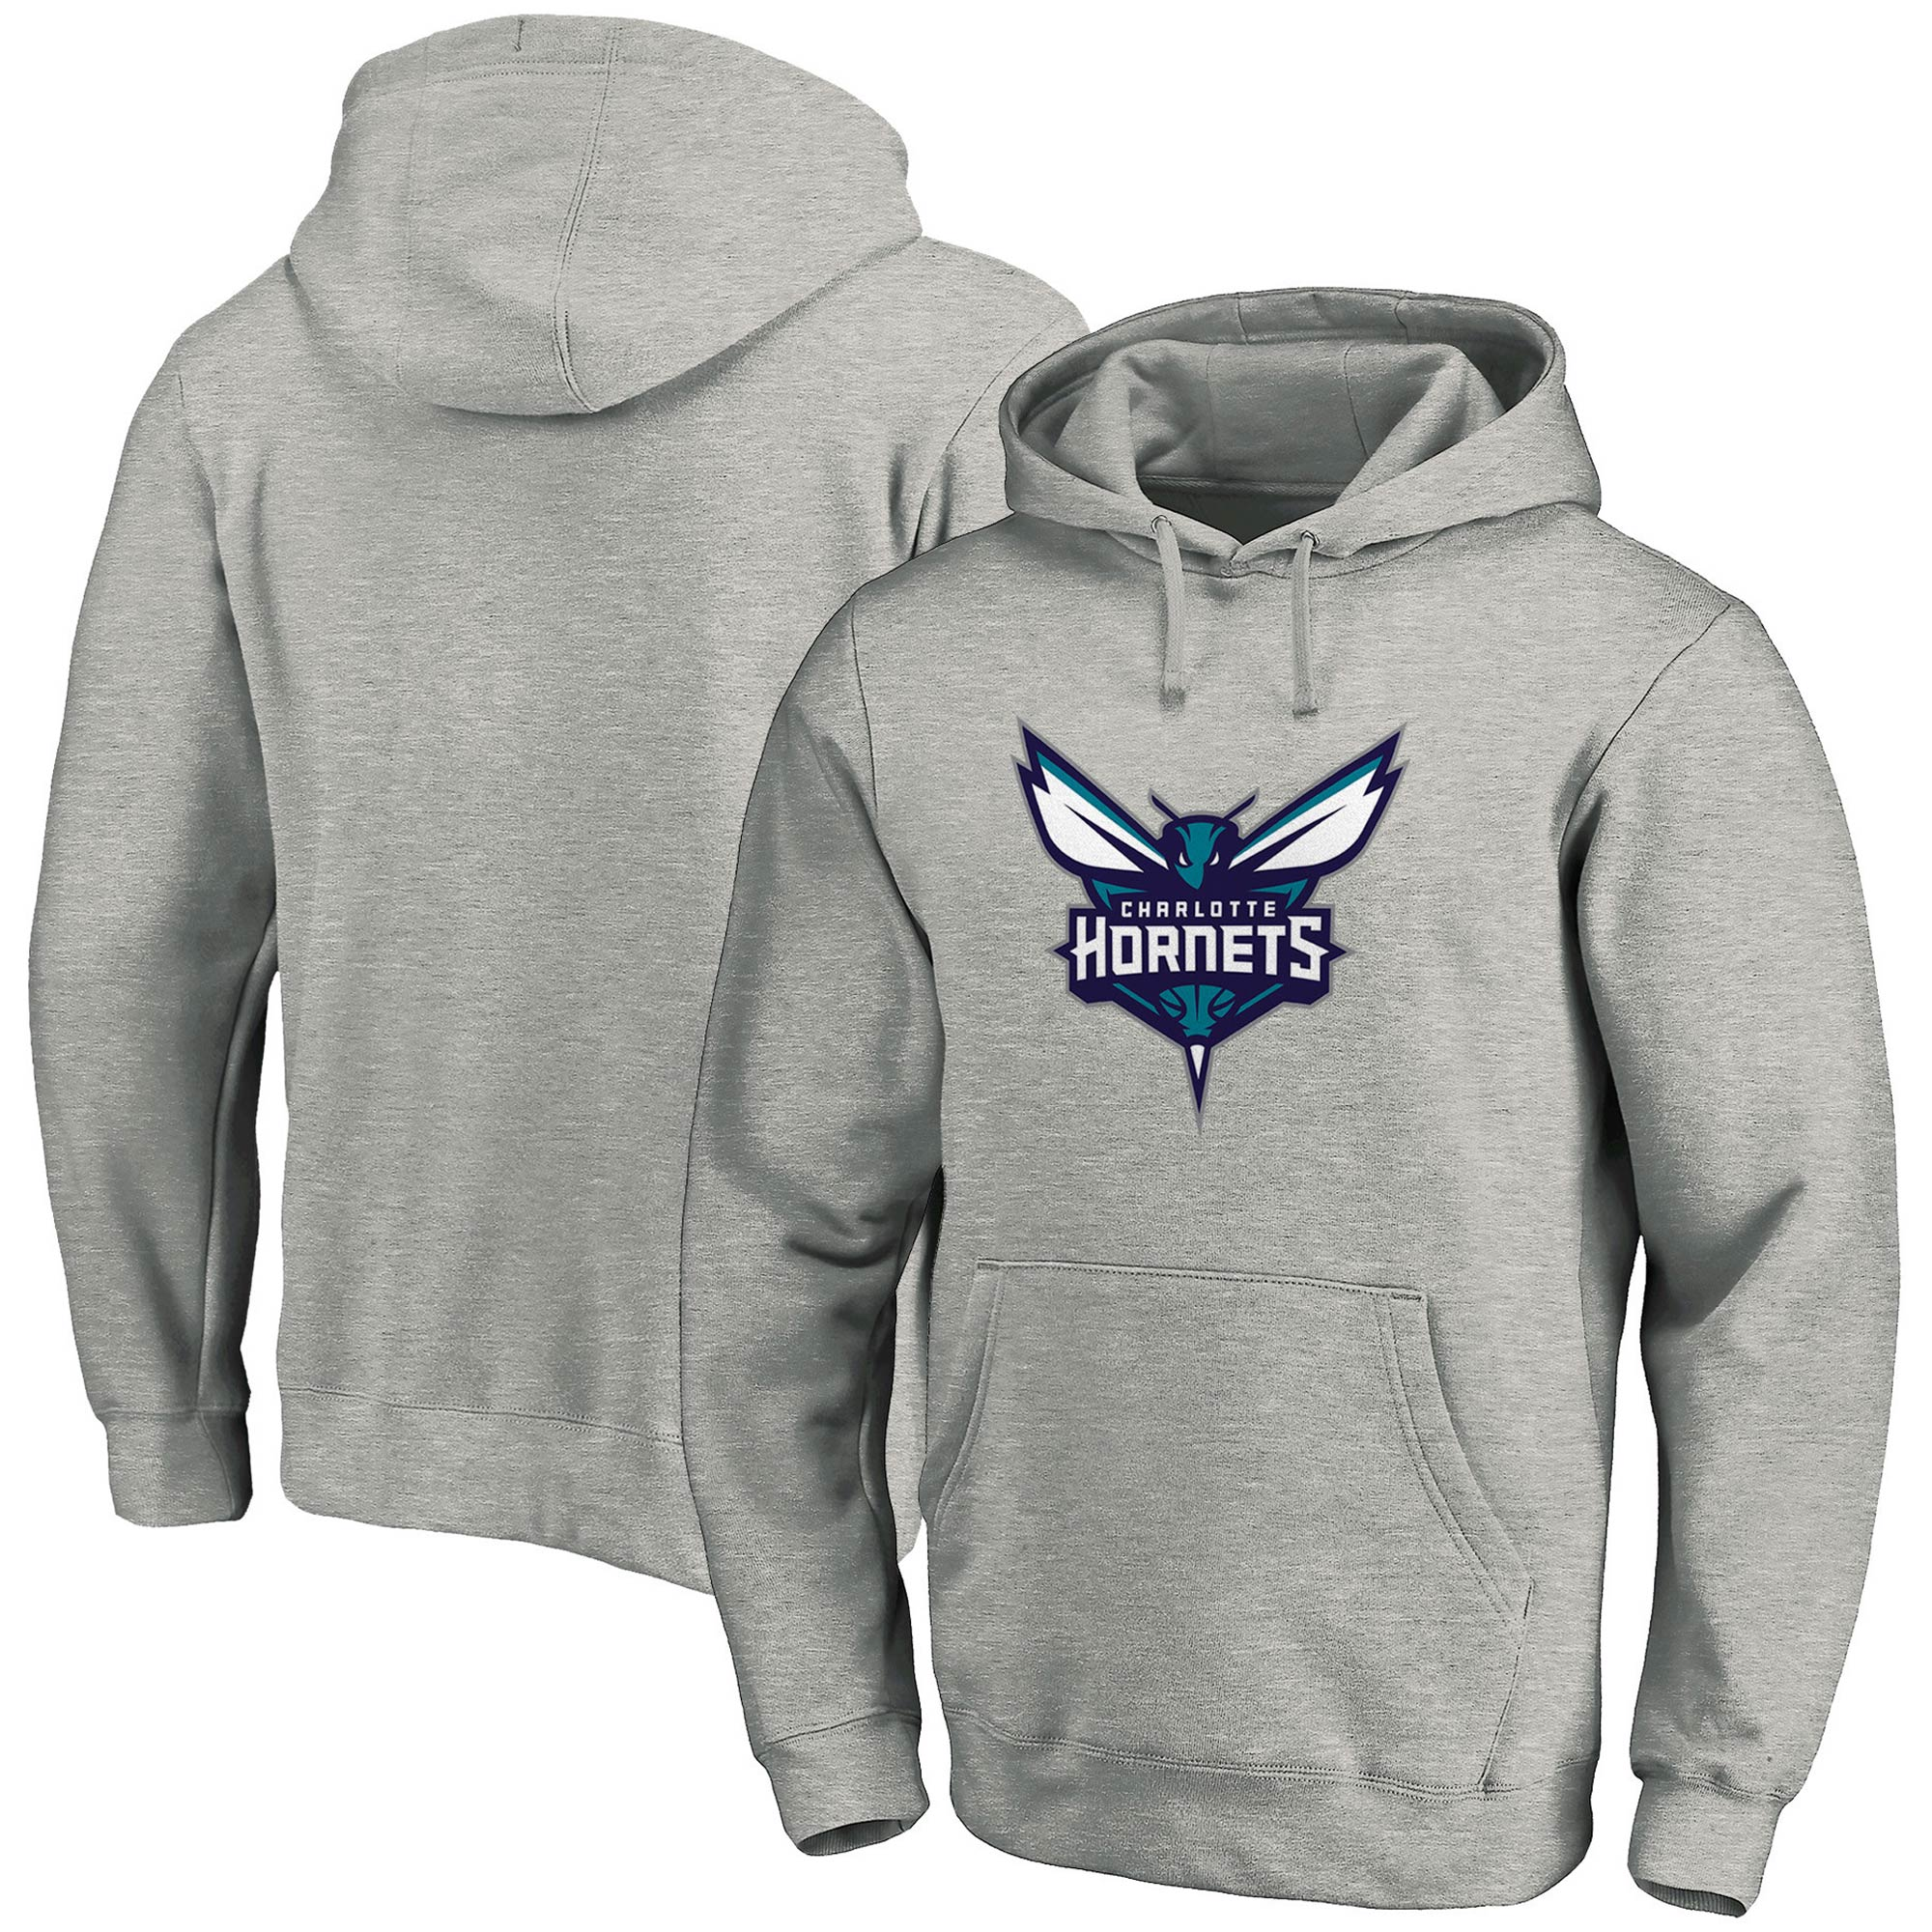 Charlotte Hornets Fanatics Branded Team Primary Logo Pullover Hoodie - Heathered Gray